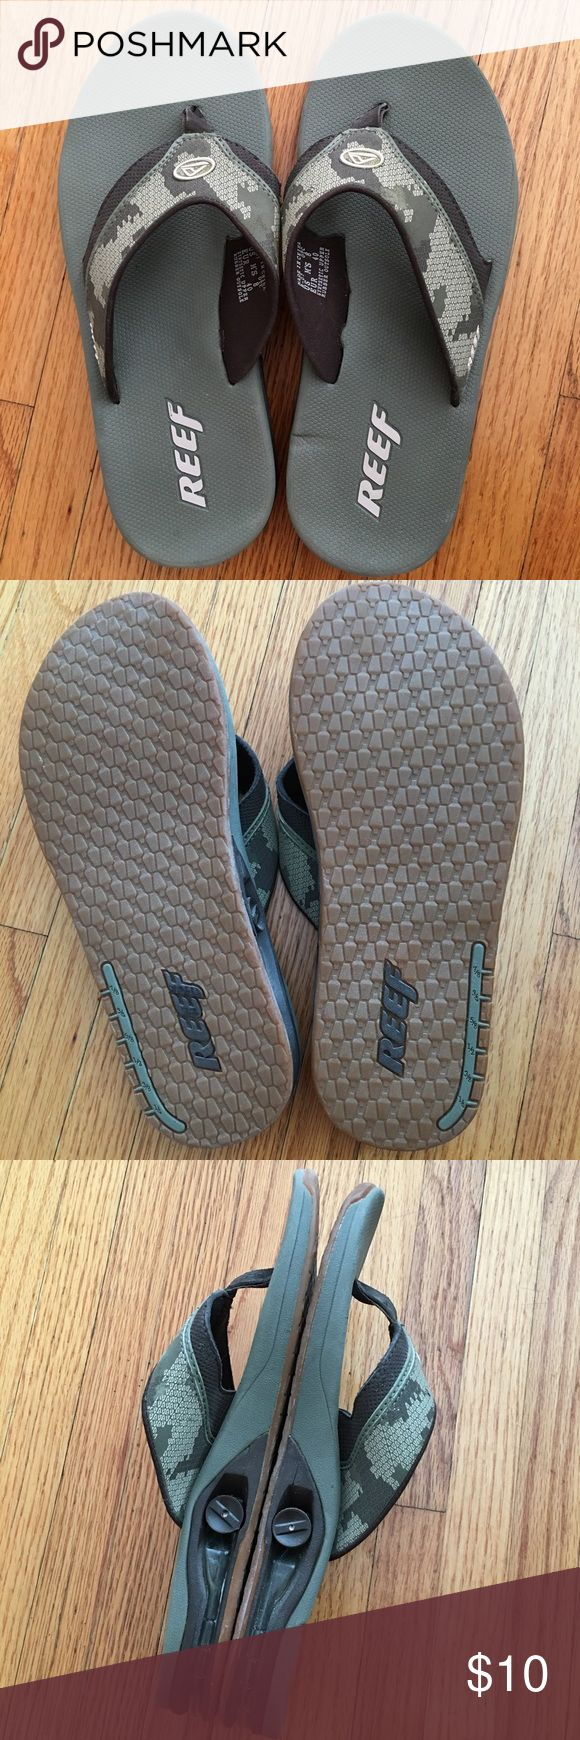 Men's Reef flip flops Men's reef flip flops.  Only worn a few times.  Good condition.  Only minor flaws on the straps and a few dents/marks on insoles as seen in photos.  Size 8. Reef Shoes Sandals & Flip-Flops